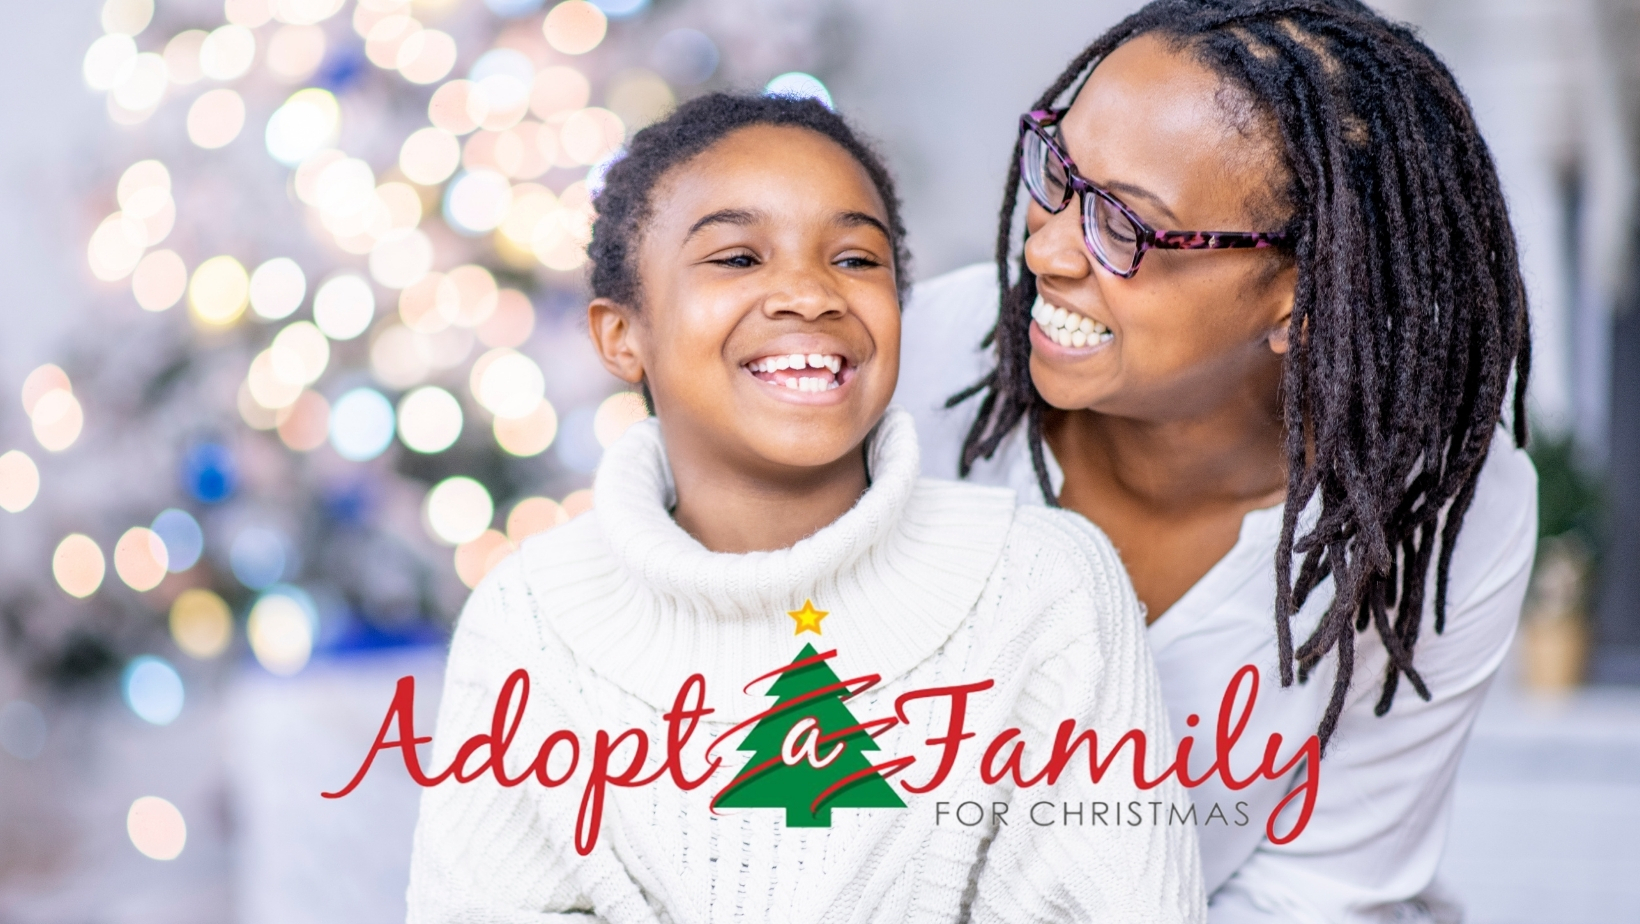 Adopt-a-Family for Christmas at Catholic Charities of Northern Kansas